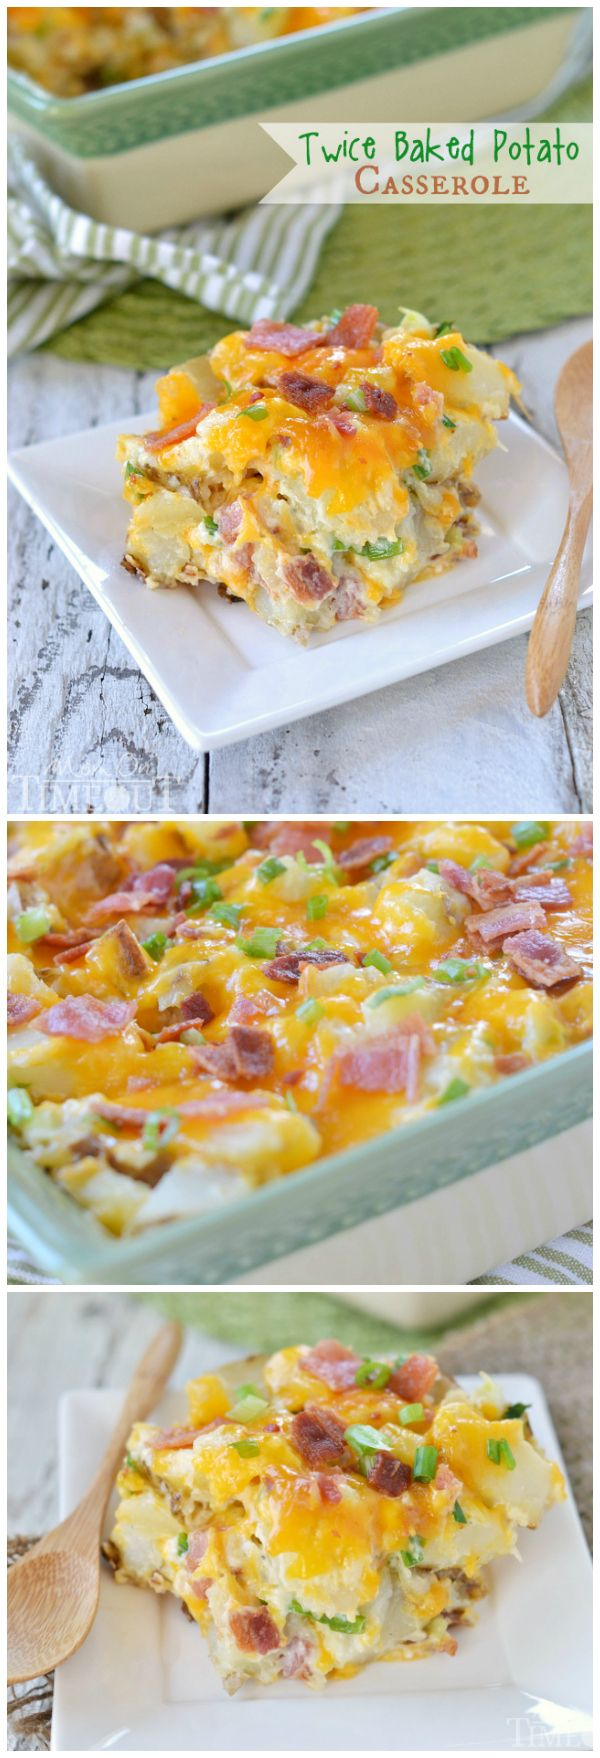 Twice Baked Potato Casserole - Save recipe on iPhone by ONE snap via Sight (Check How: https://itunes.apple.com/us/app/sight-save-articles-news-recipes/id886107929?mt=8